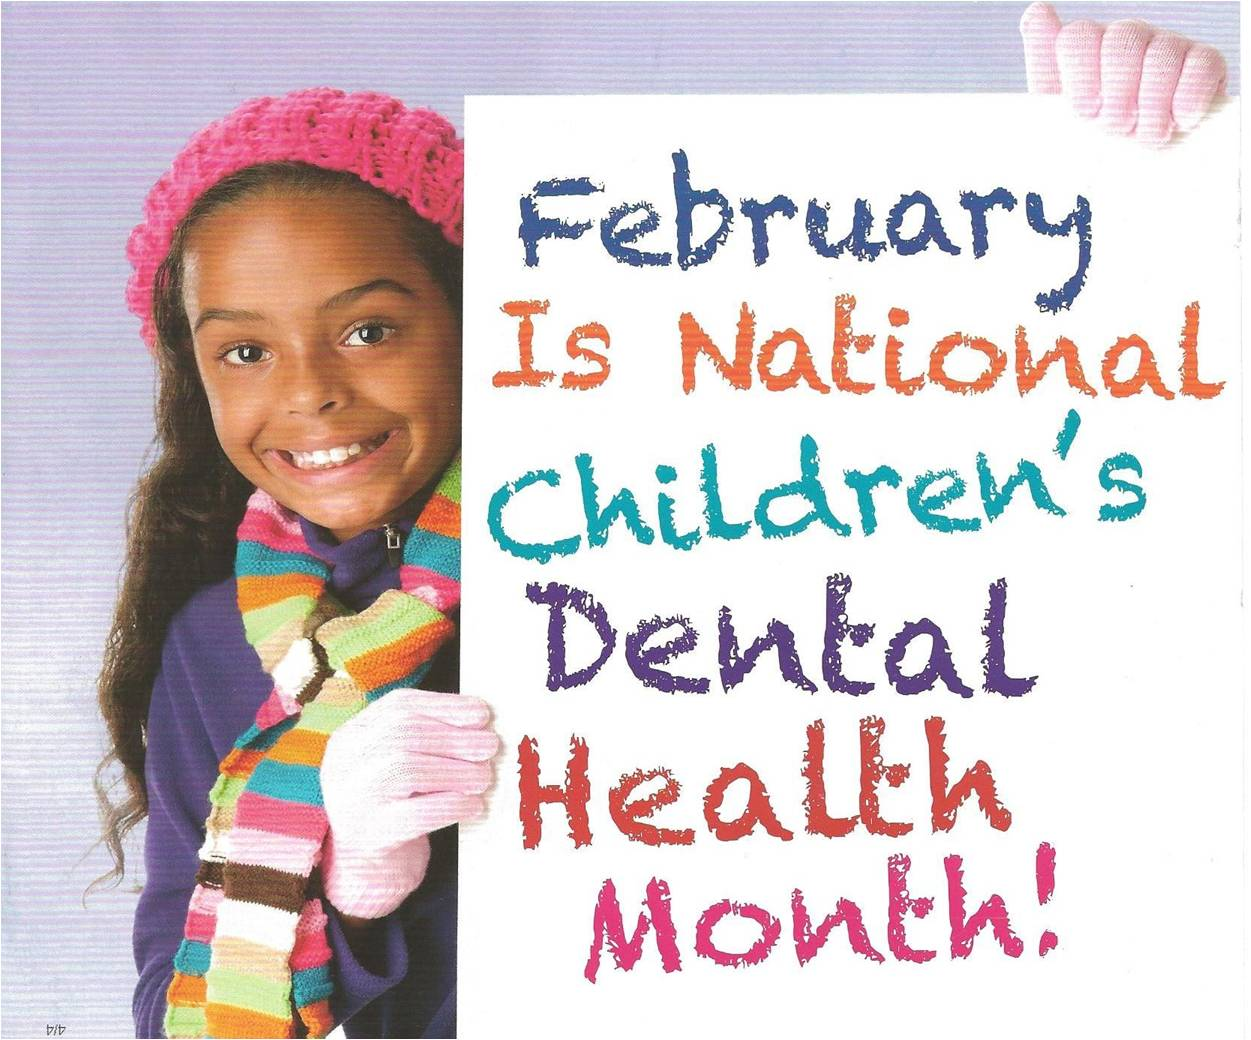 National Children's Dental Health Month